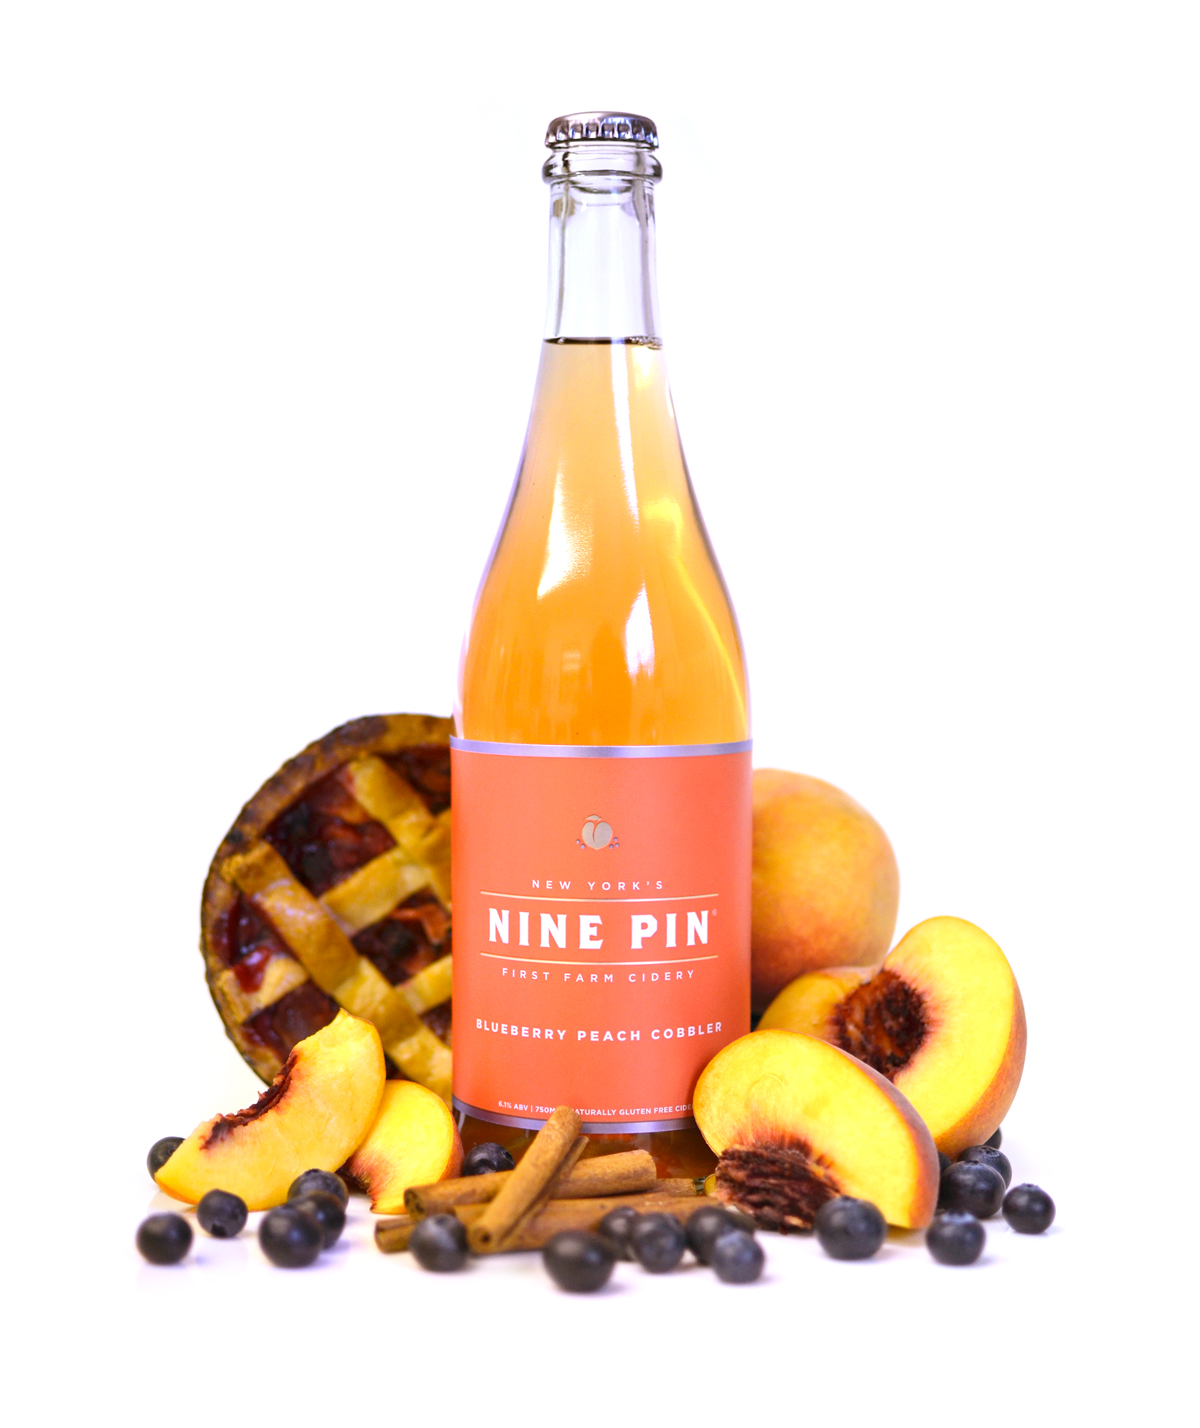 A cider co-fermented with local blueberries and peaches aged with a touch of cinnamon. This cider is rich and comforting, reminiscent of a fresh slice of blueberry peach cobbler.